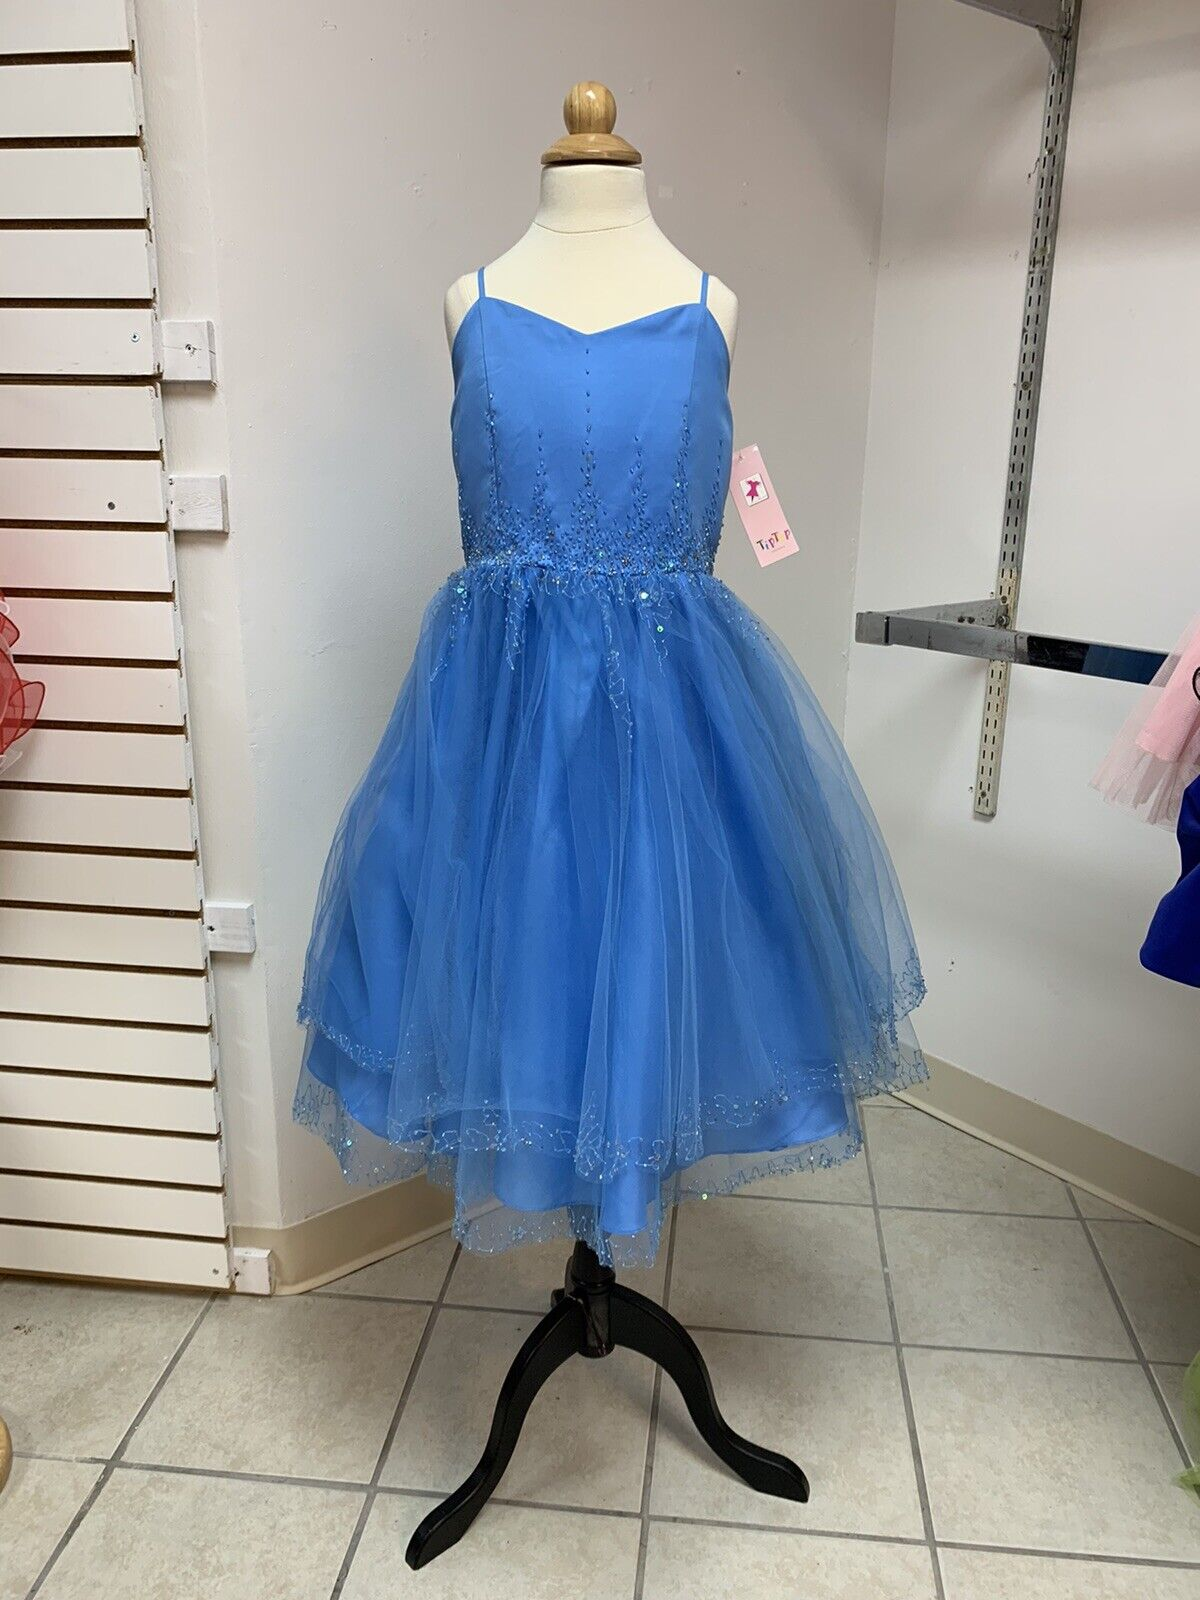 8 Easter Flower girl Pageant Crowning Special Occasion Formal Party Dress NWT